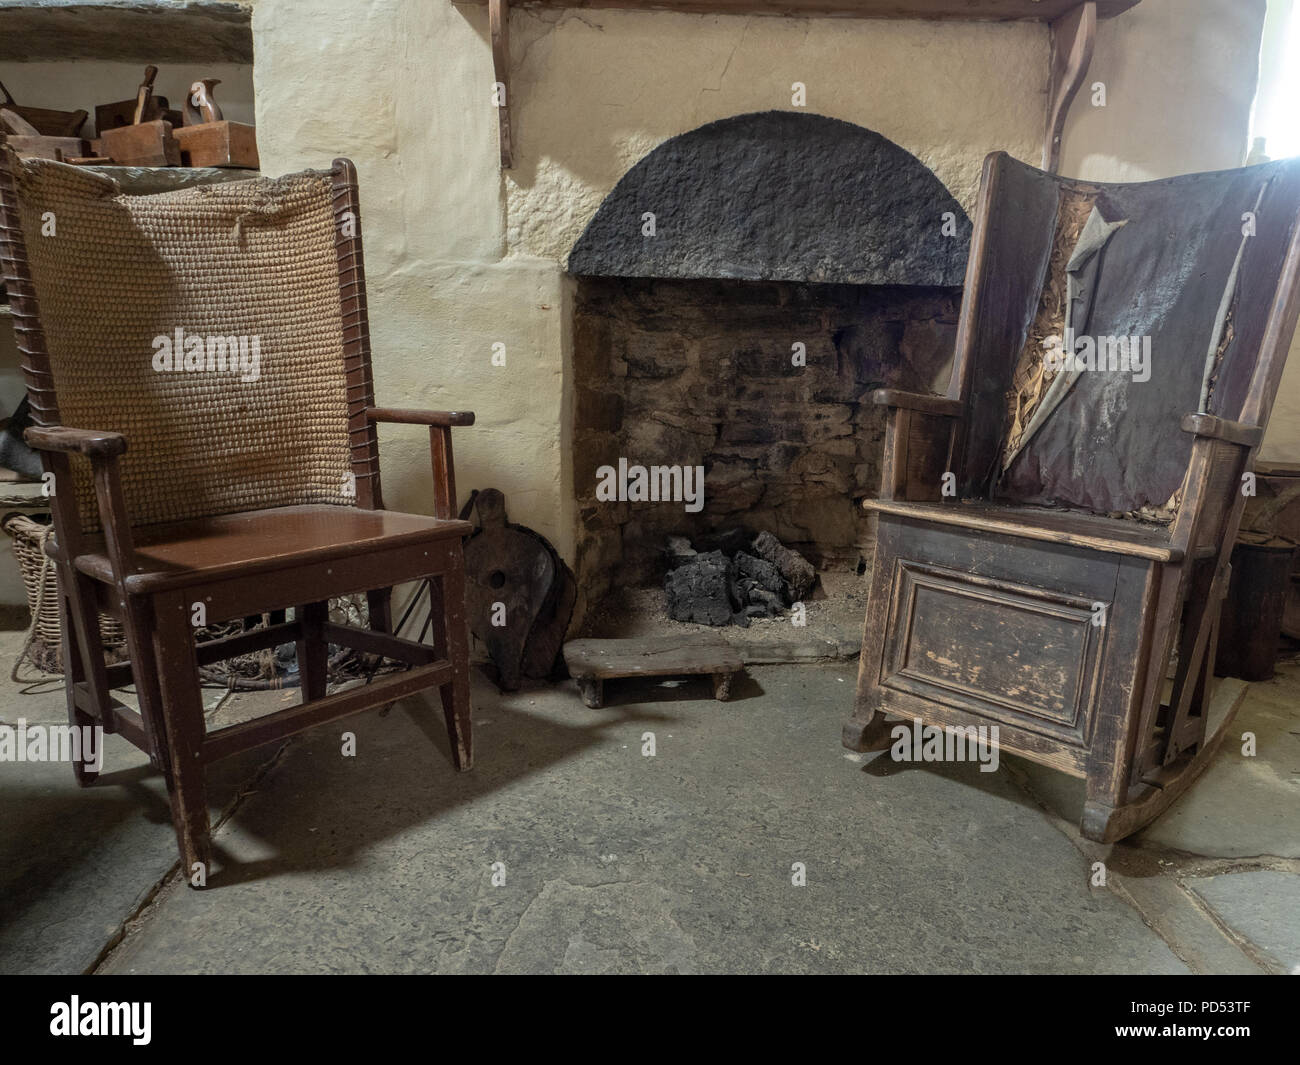 Orkney chairs by the hearth at Corrigal - Orkney Chairs By The Hearth At Corrigal Stock Photo: 214627743 - Alamy